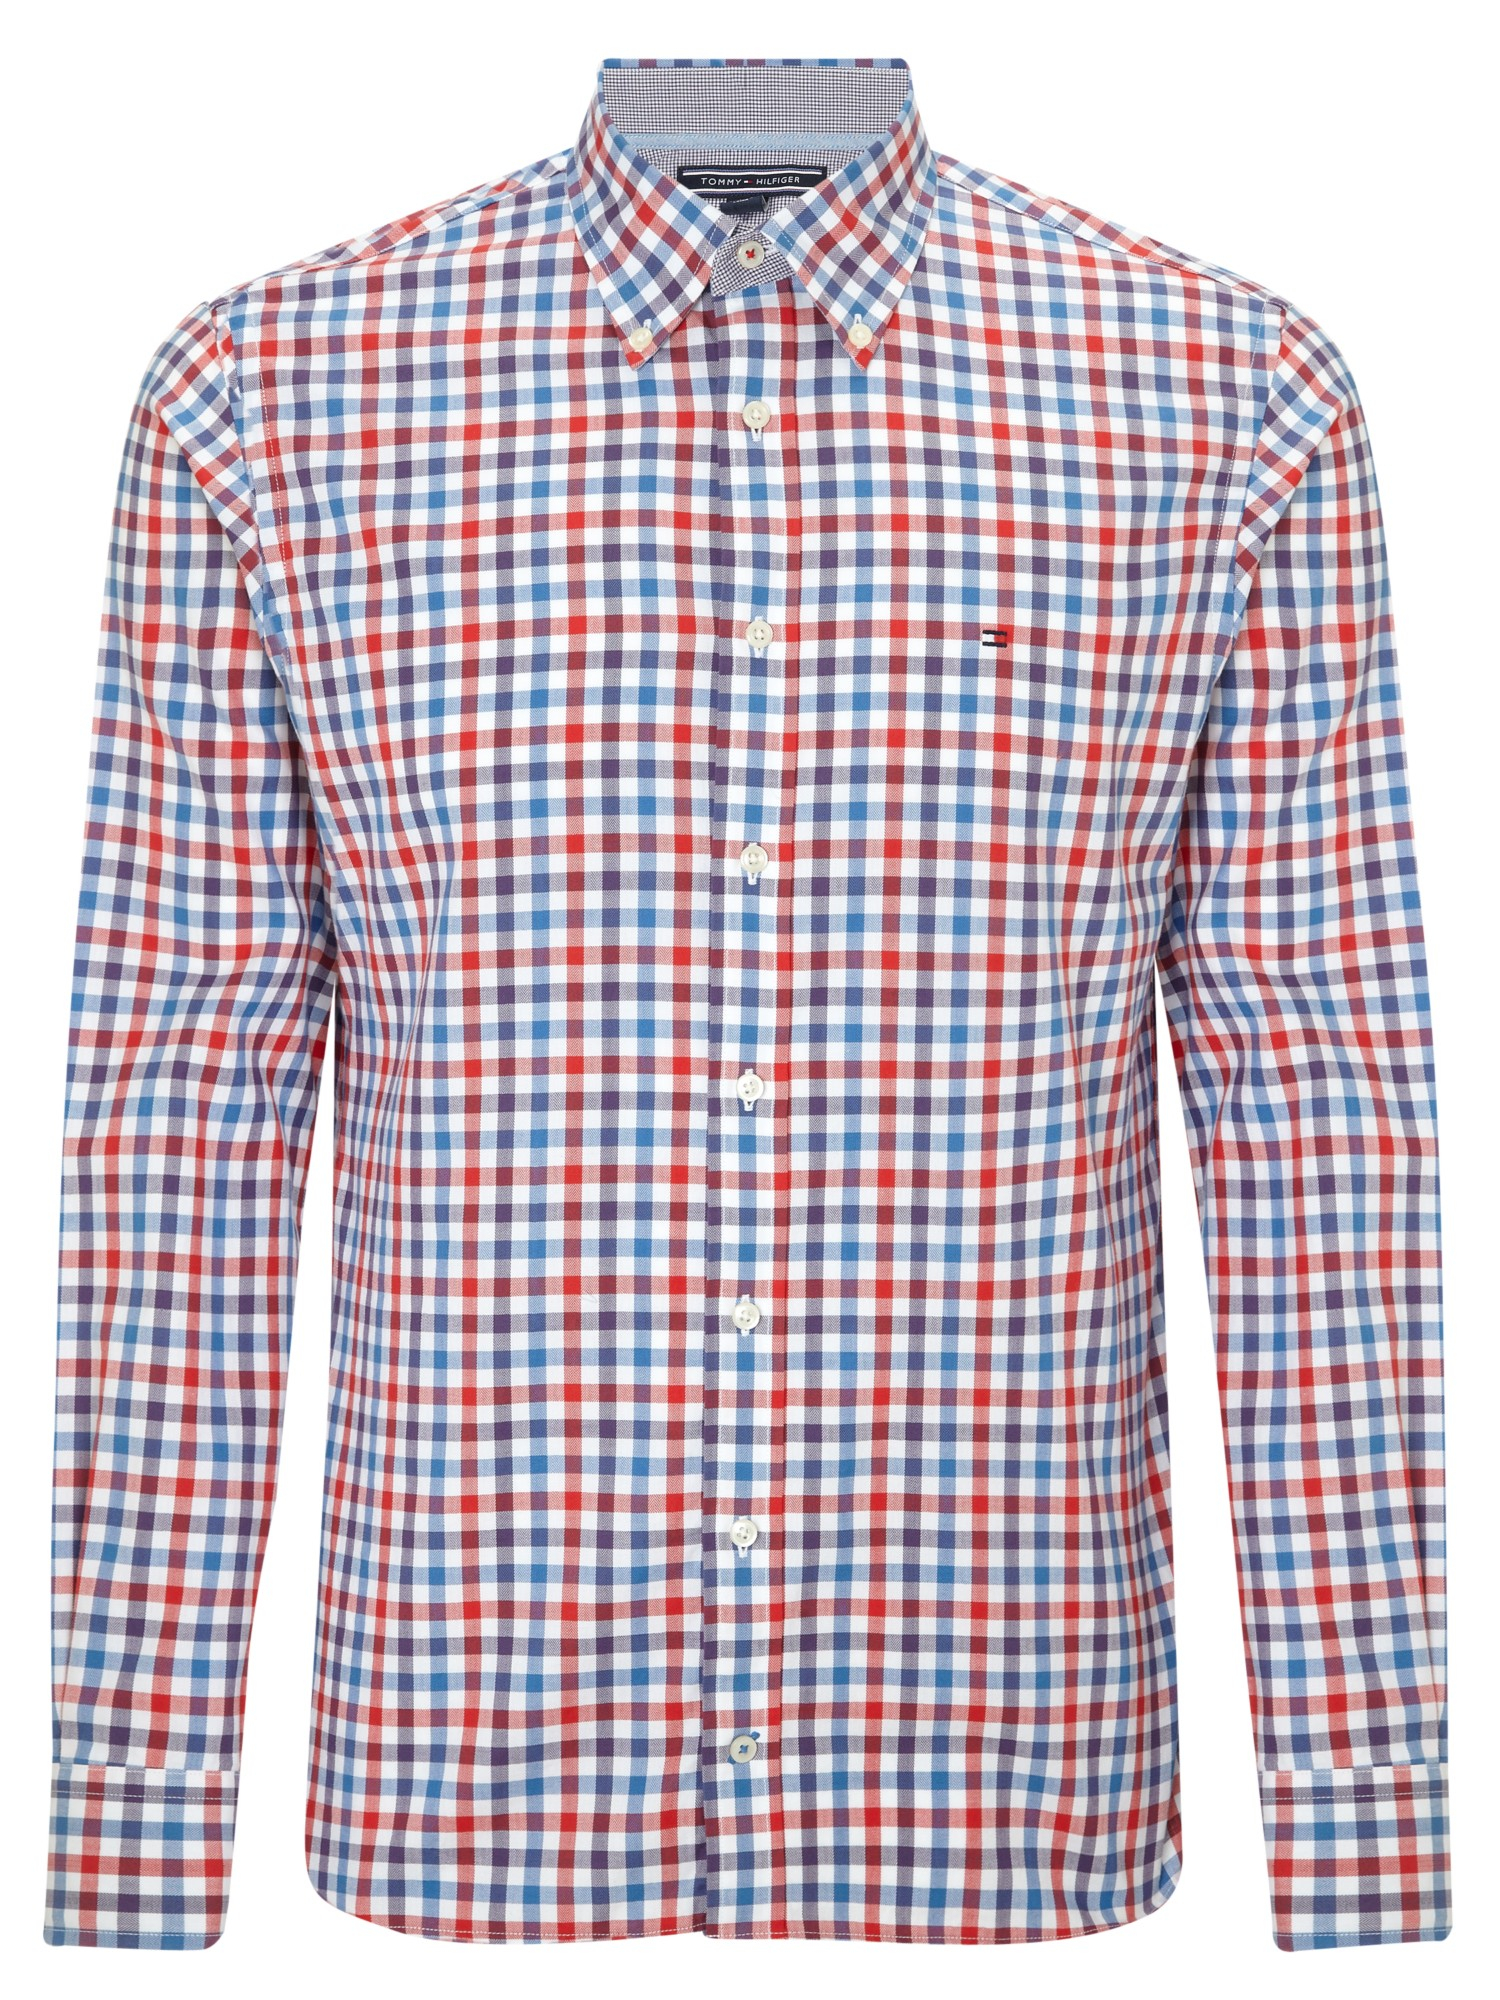 Tommy Hilfiger Multi Gingham Print Shirt In Red For Men Lyst